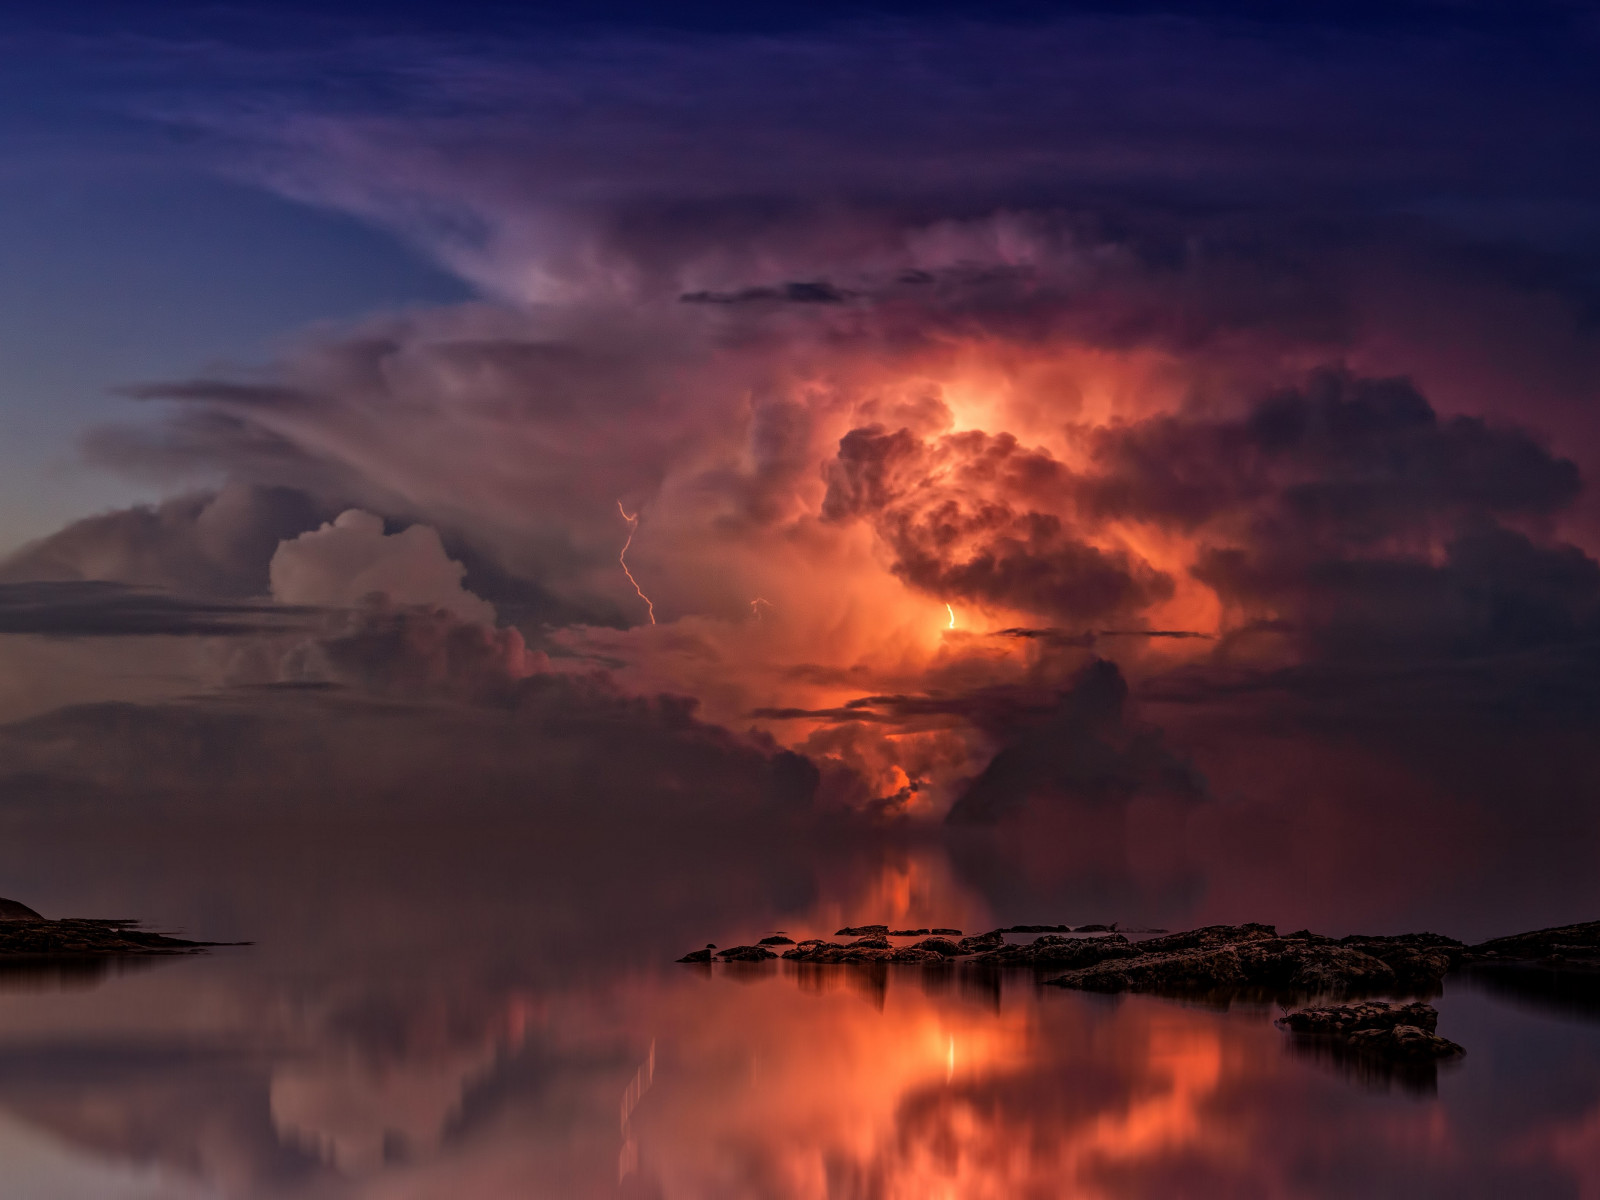 Lightning and thunderstorm in the sky wallpaper 1600x1200